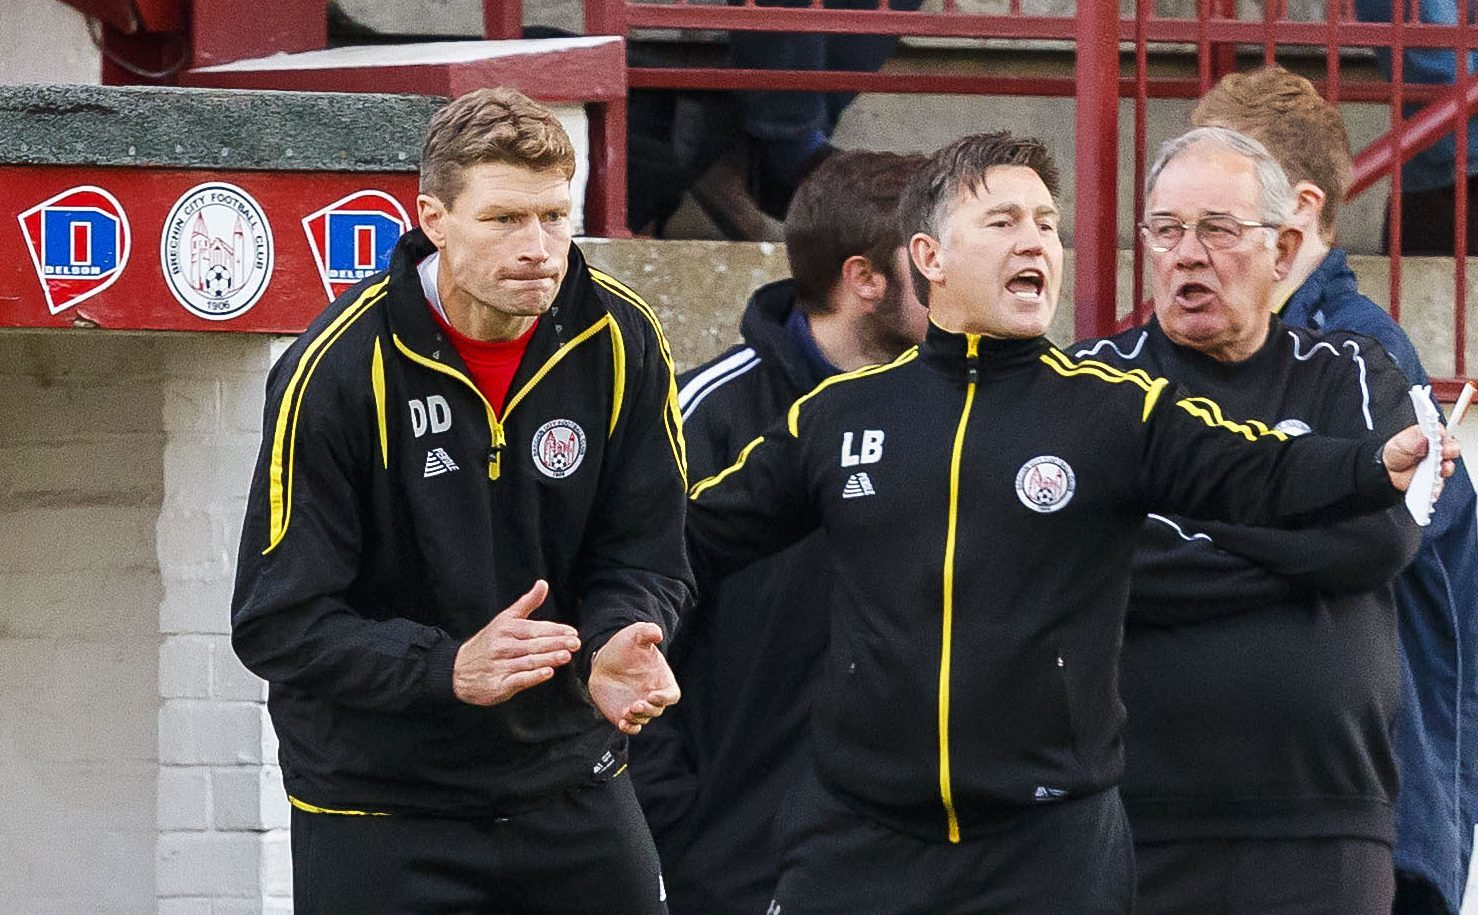 Darren Dods encourages his team in the first leg.